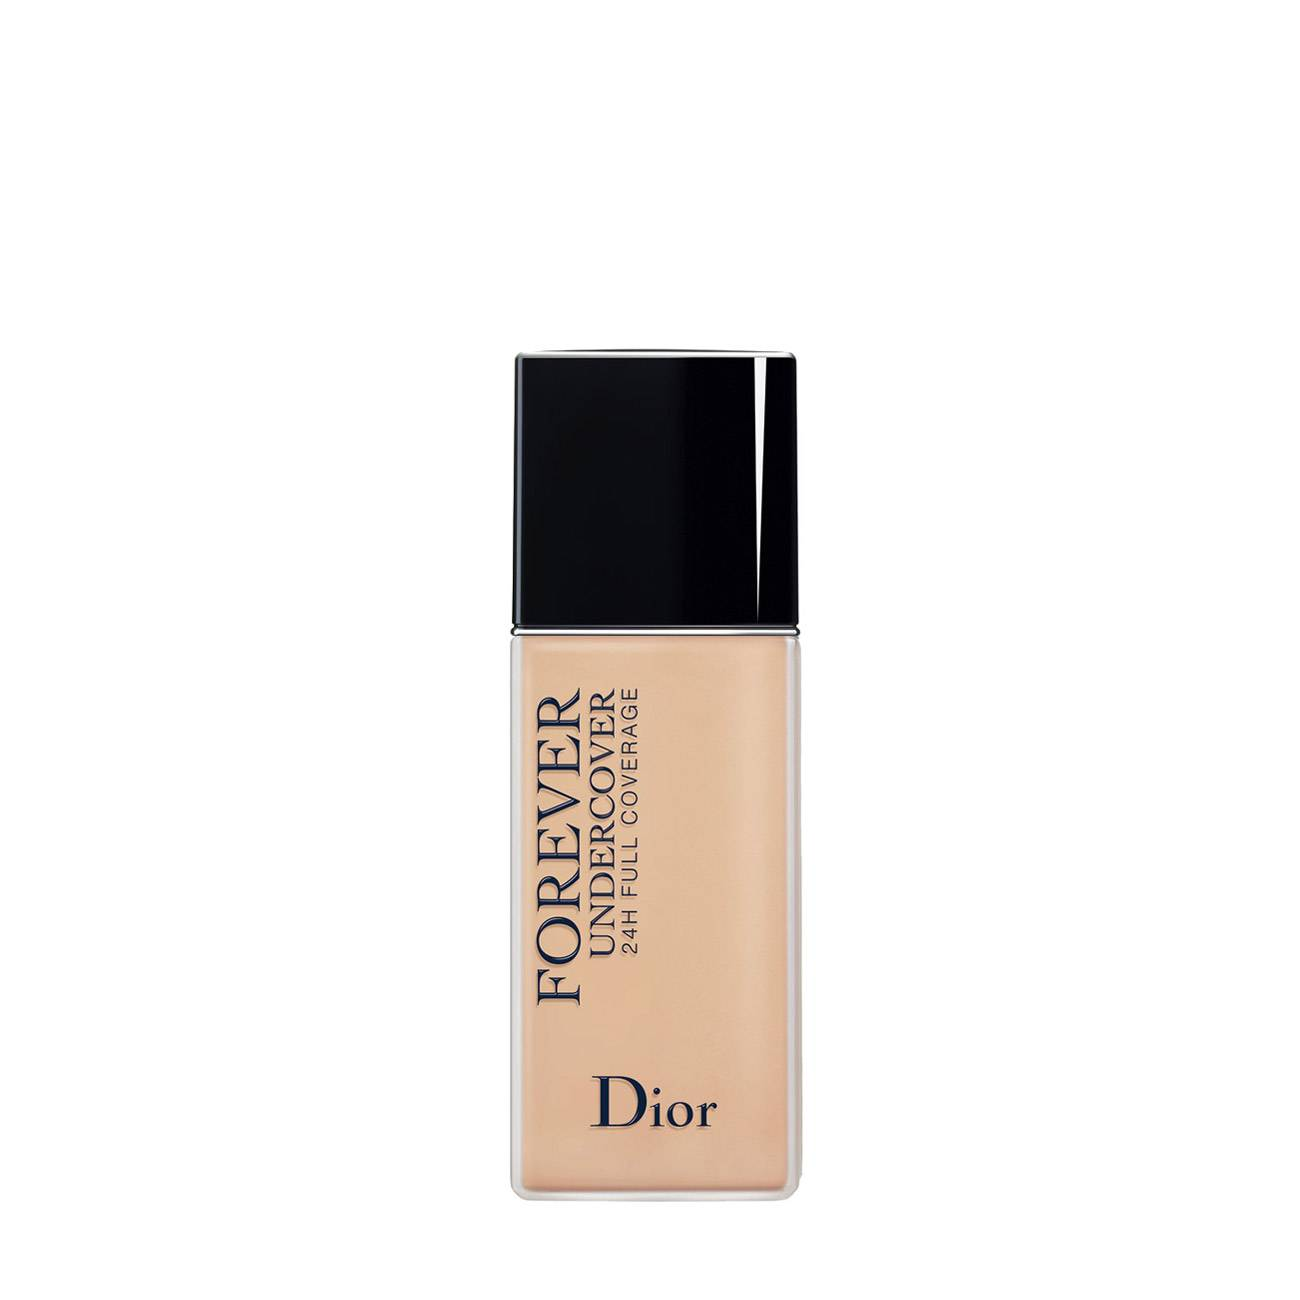 Diorskin Forever Undercover 030-Medium Beige Dior imagine 2021 bestvalue.eu